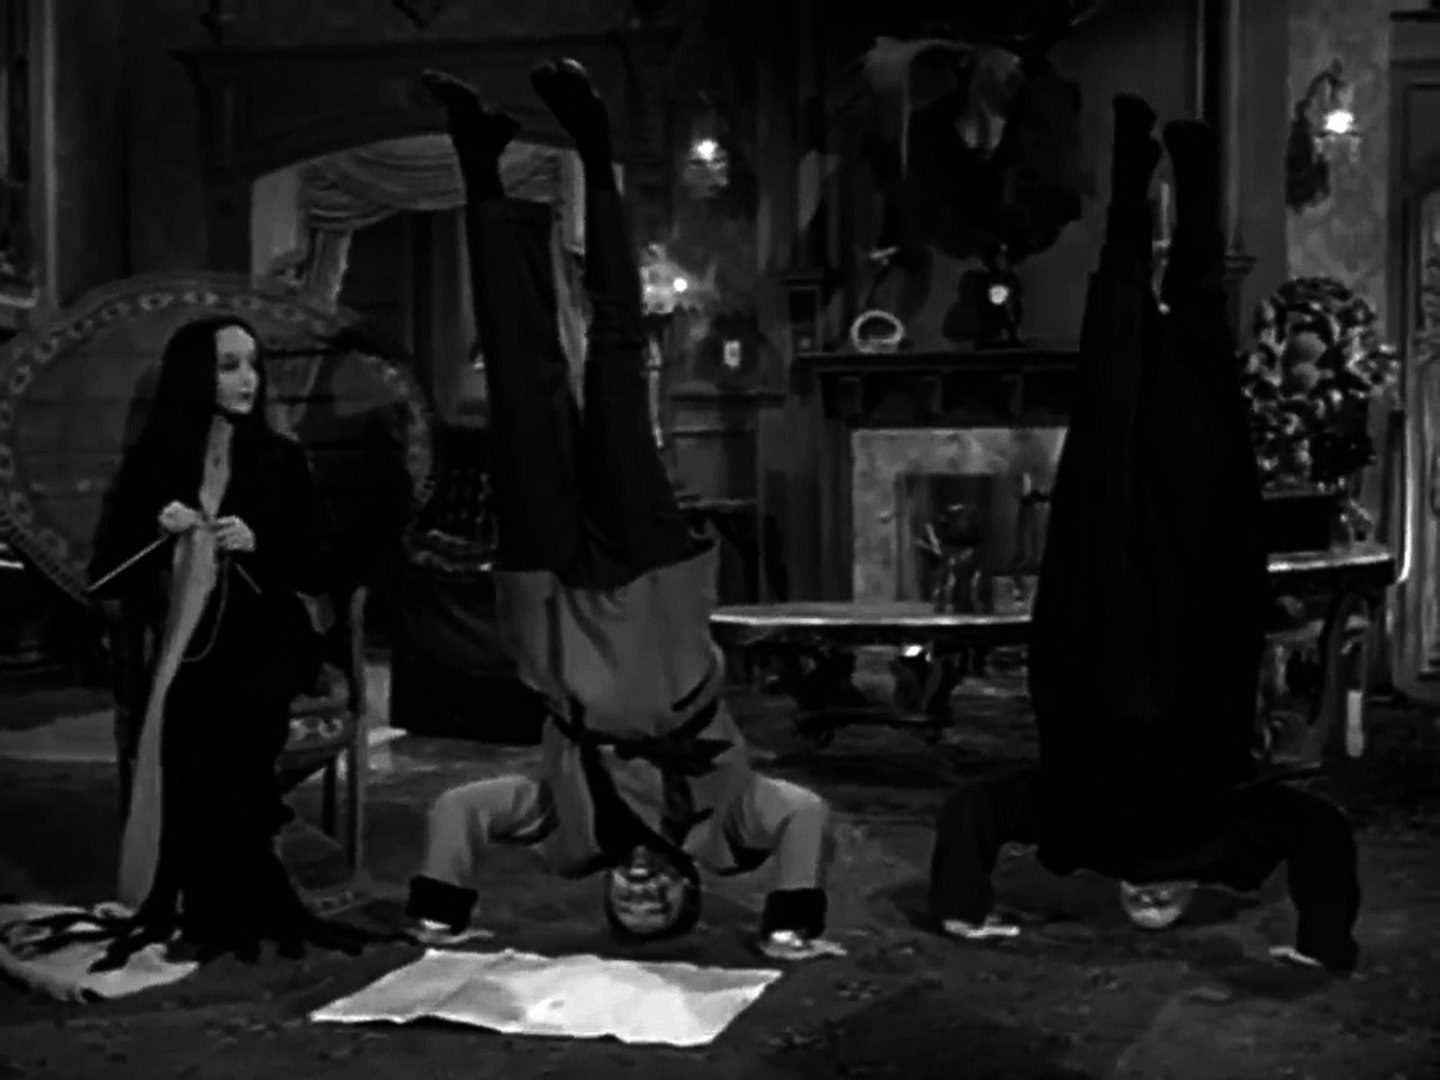 The Addams Family S01E14 - Art and the Addams Family